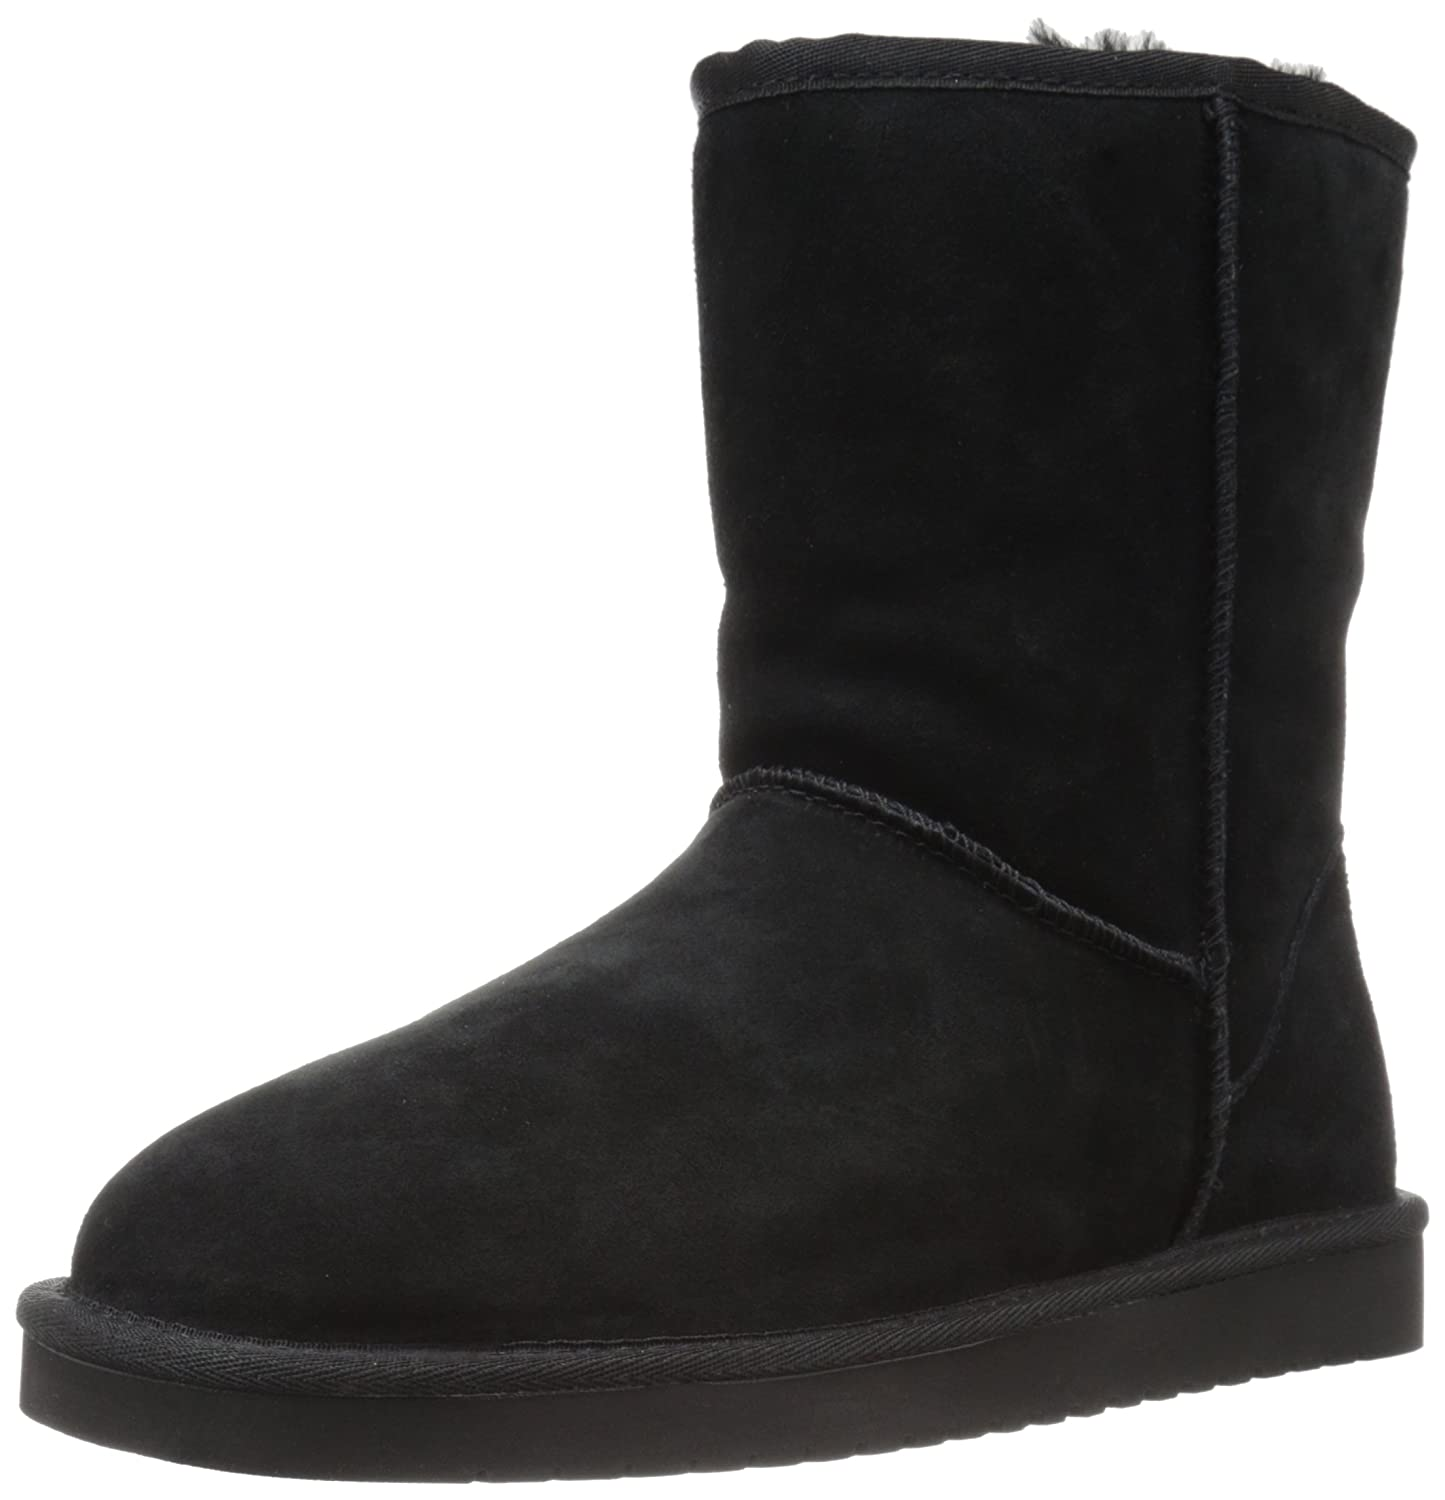 dd77d0cf8a3 Koolaburra by UGG Women's koola Short Fashion Boot